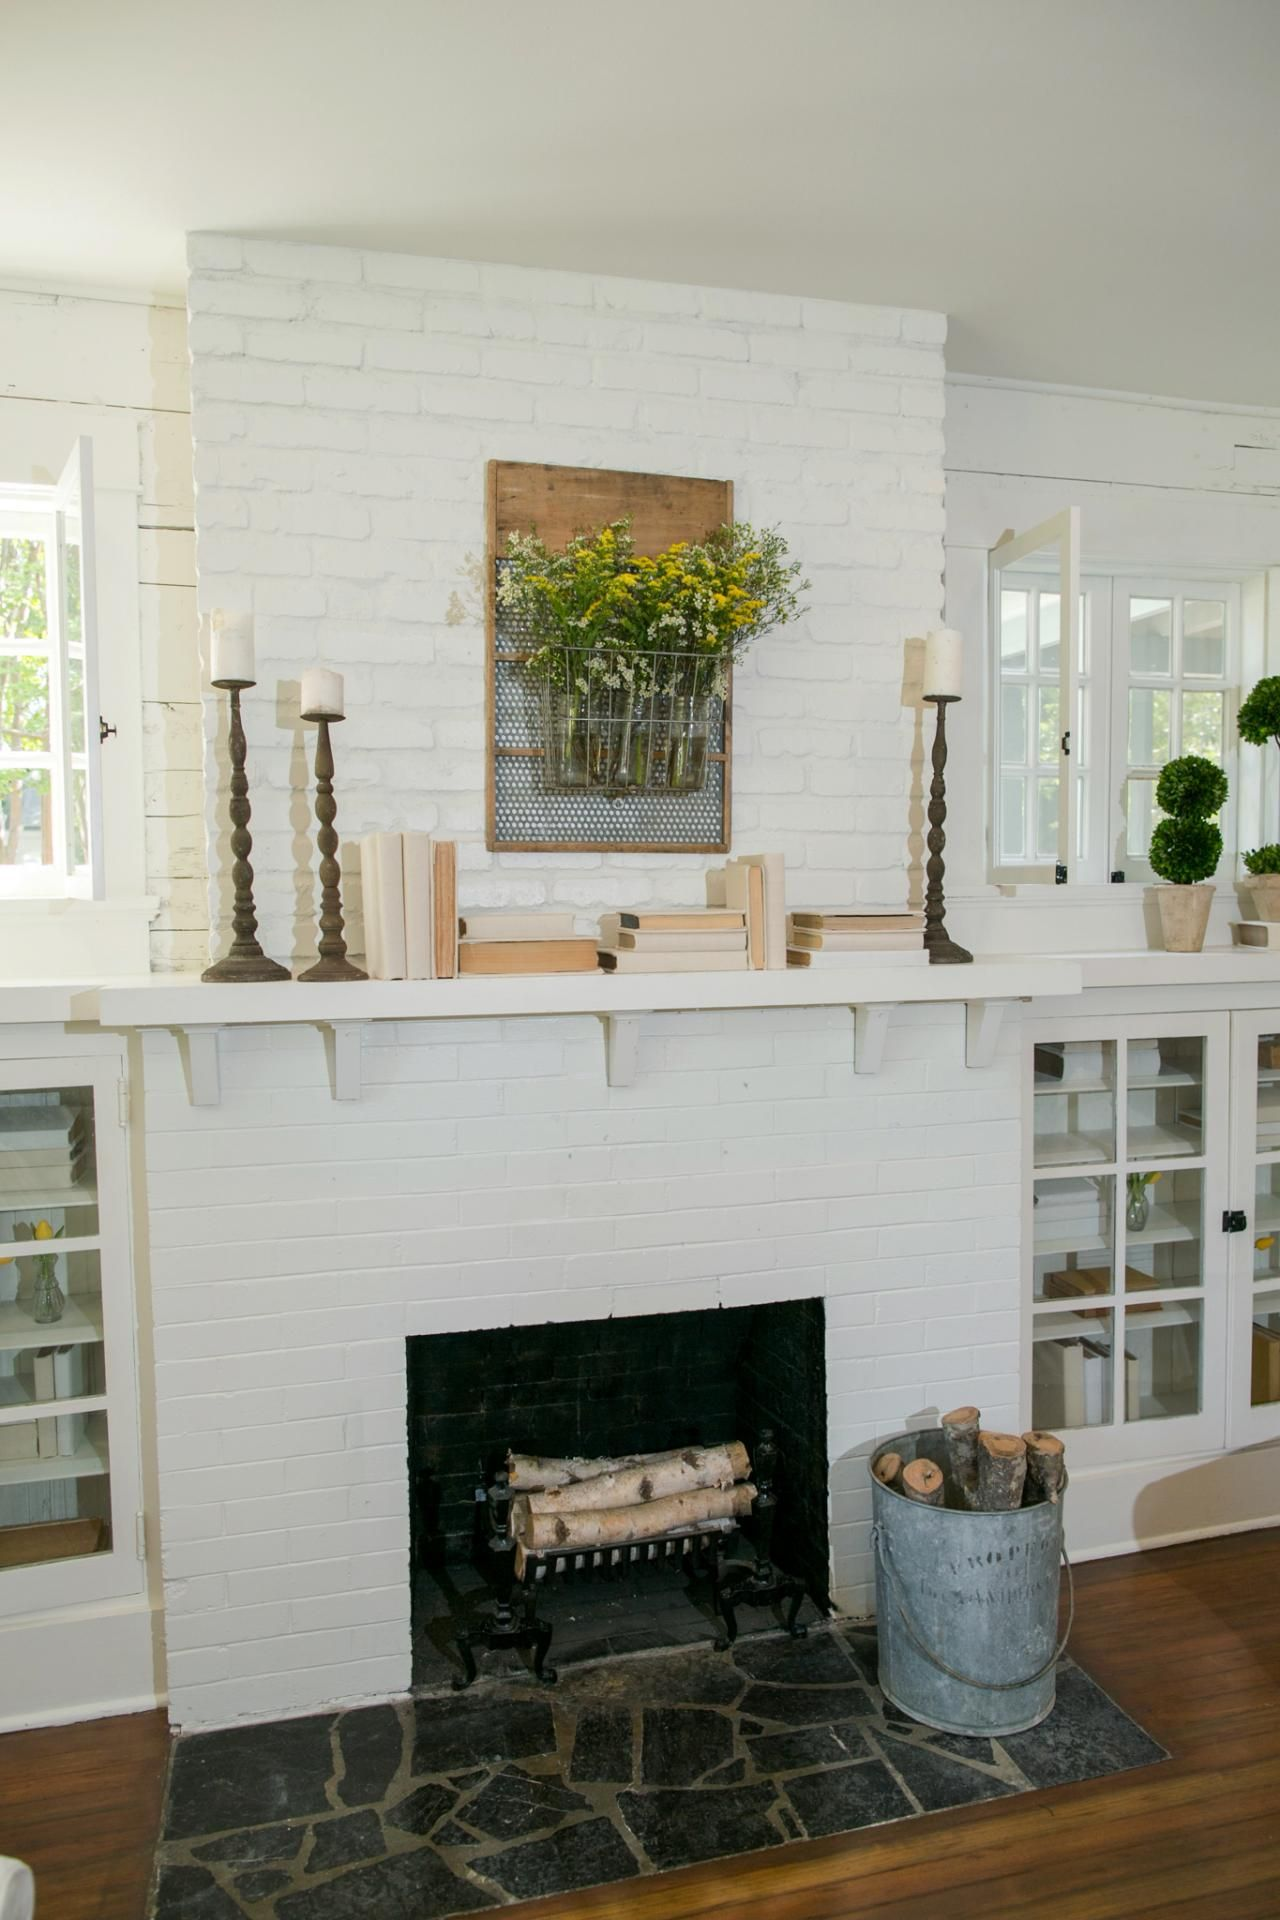 Joanna Gaines Farmhouse Mantel Chip And Jo Prove It Yes You Can Downsize Without Losing